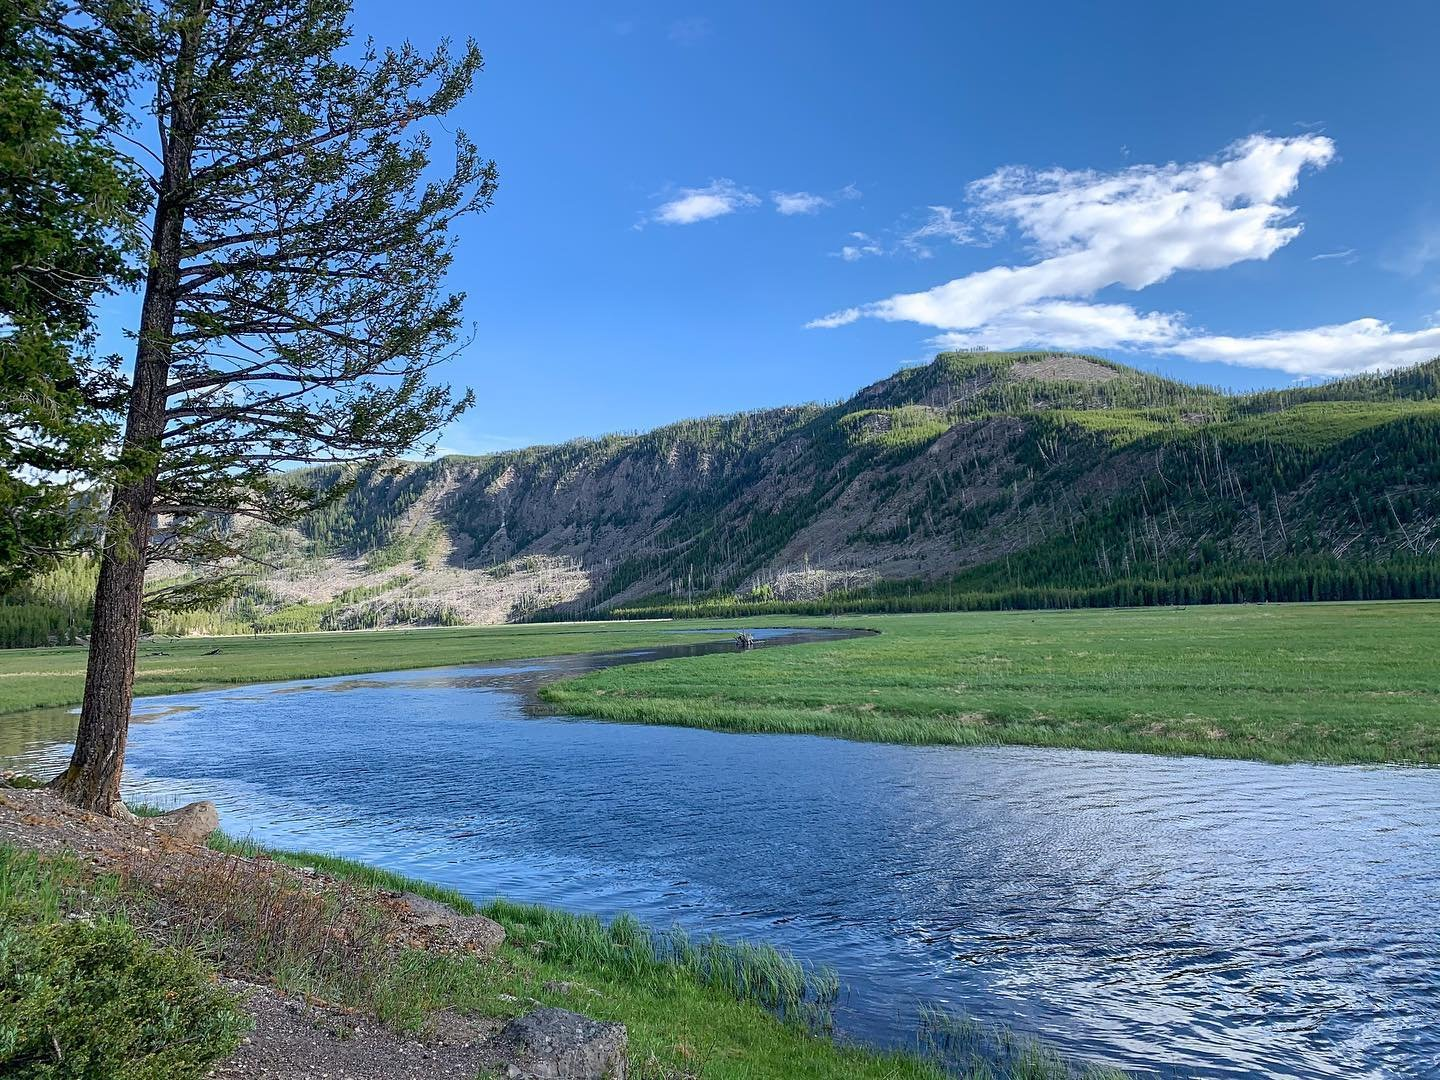 Photo by user angiekickliter, caption reads I am so grateful, so blessed, so in awe at the beauty of this magical place. The Madison River and Mount Hayes along the West Entrance Road. #yellowstonenationalpark #madiaonriver #yellowstone  #fulltimerv #fulltimervliving #fulltimervlife #fulltimervers #fulltimerving #rvlife